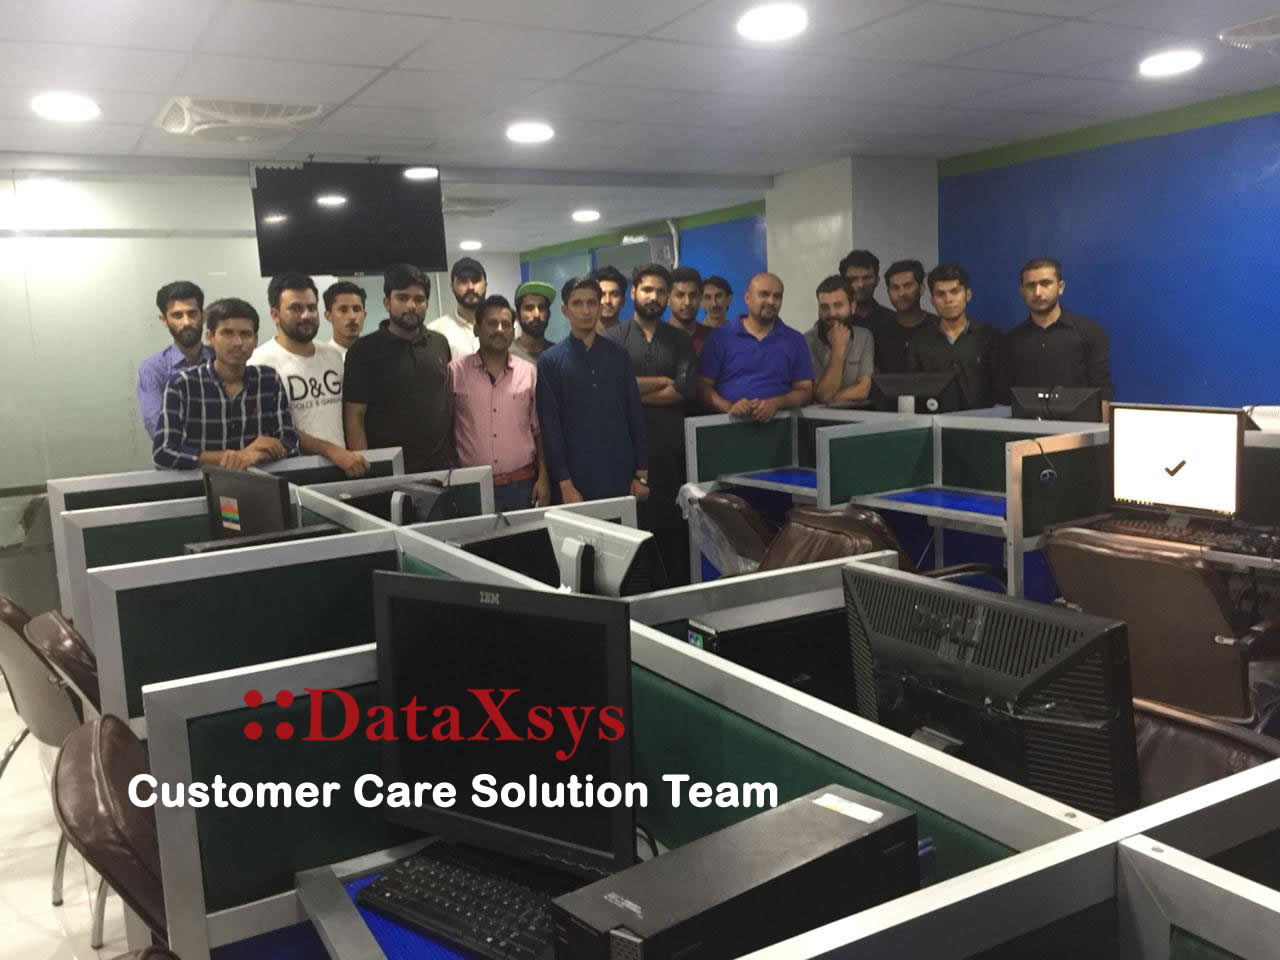 DataXsys Customer care solution